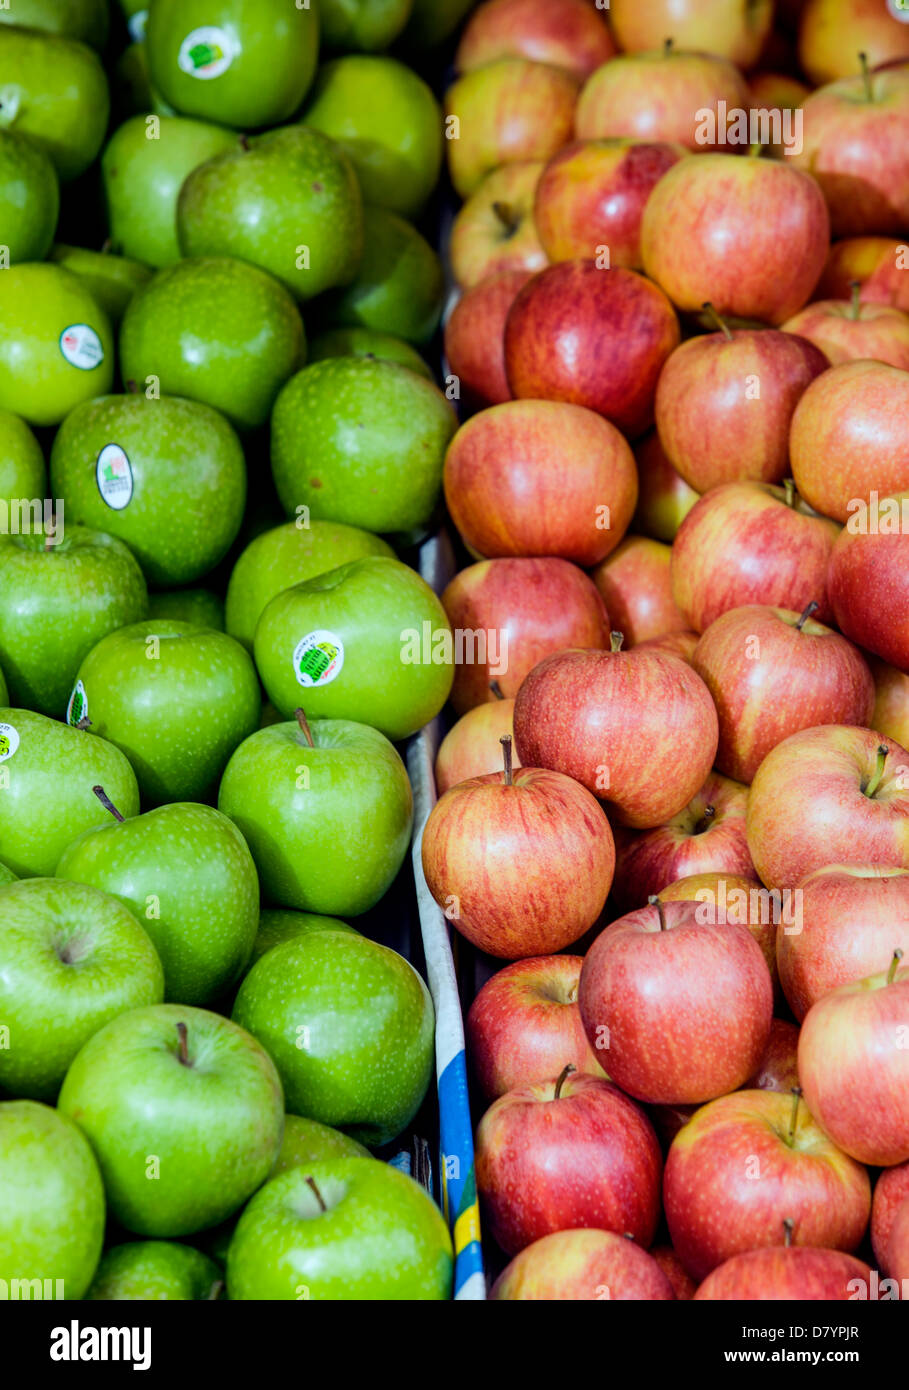 Green and red apples on a market stall. - Stock Image